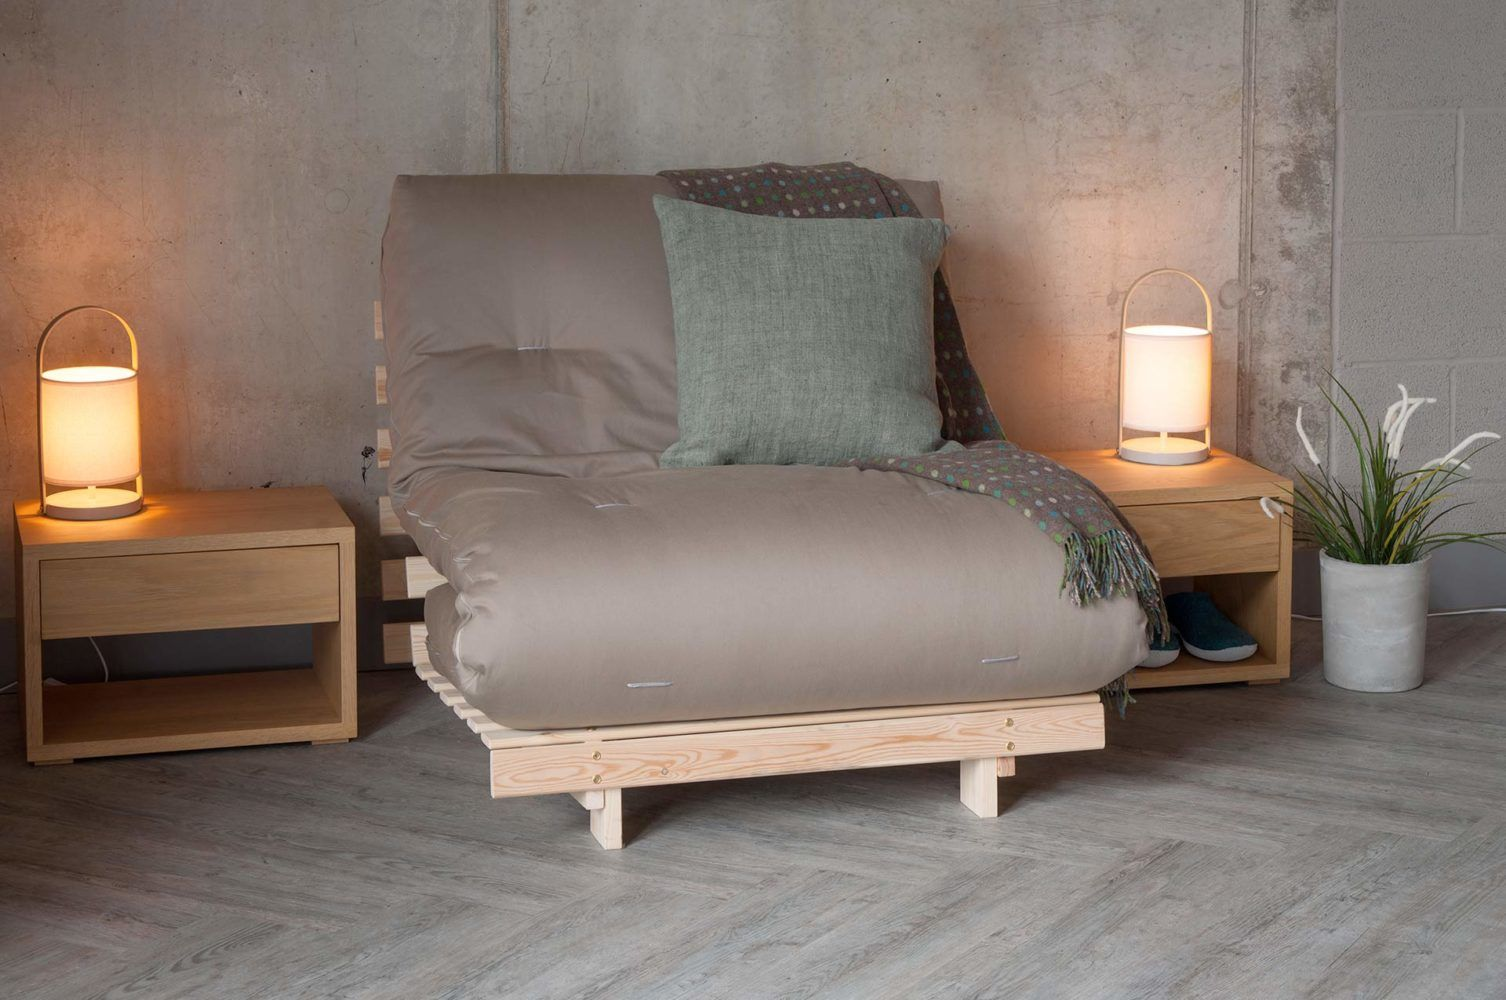 The Tokyo Futon Sofa Bed Has A Slatted Pine Base And 7 Layer Mattress Is Modern Japanese Style Uk Made Free Delivery